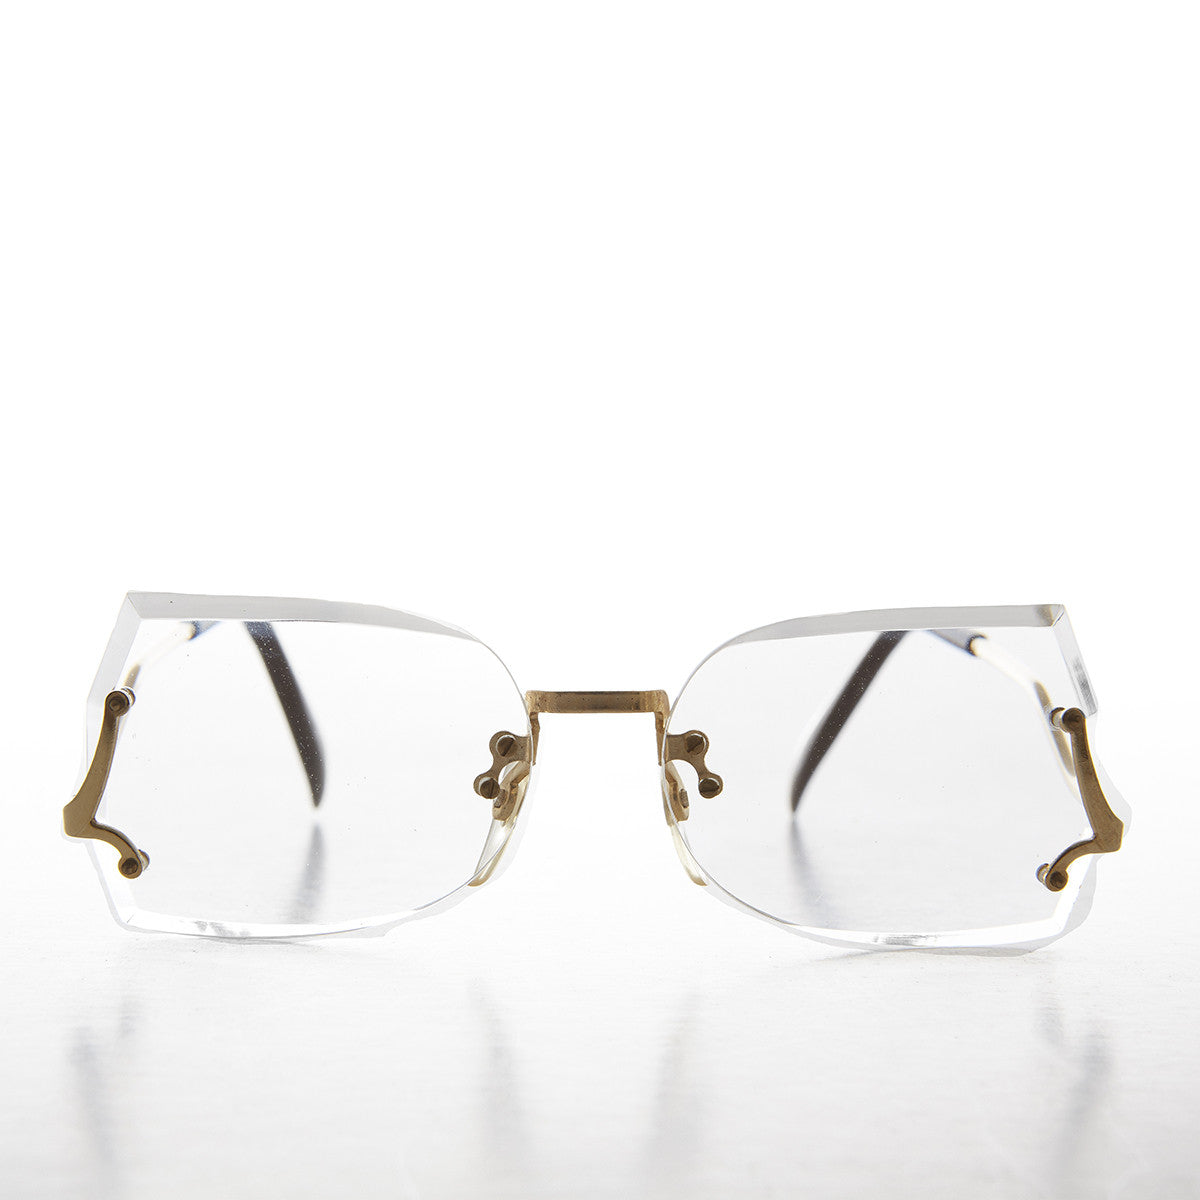 women's vintage reading glasses with upside down temples